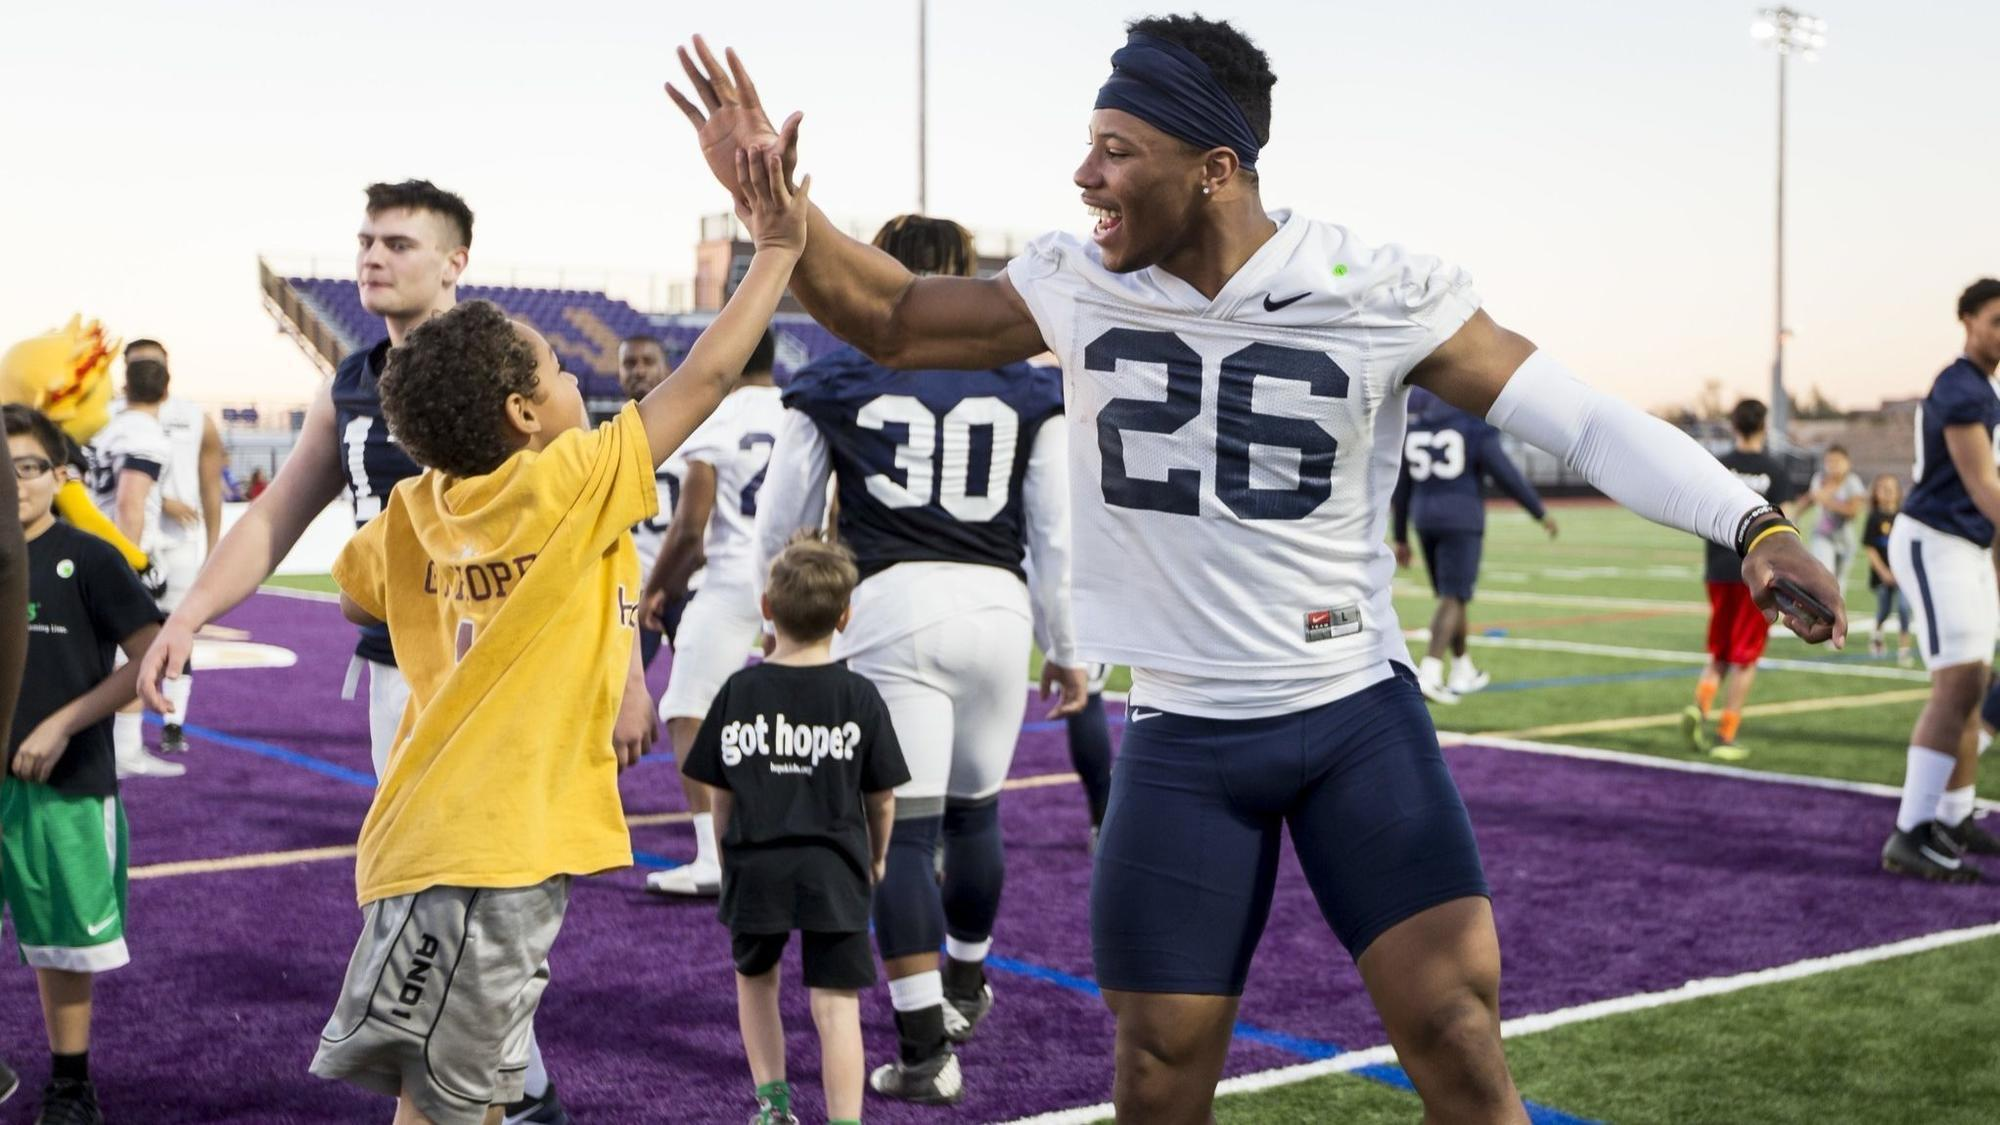 Mc-spt-saquon-barkley-day-in-pennsylvania-20180313